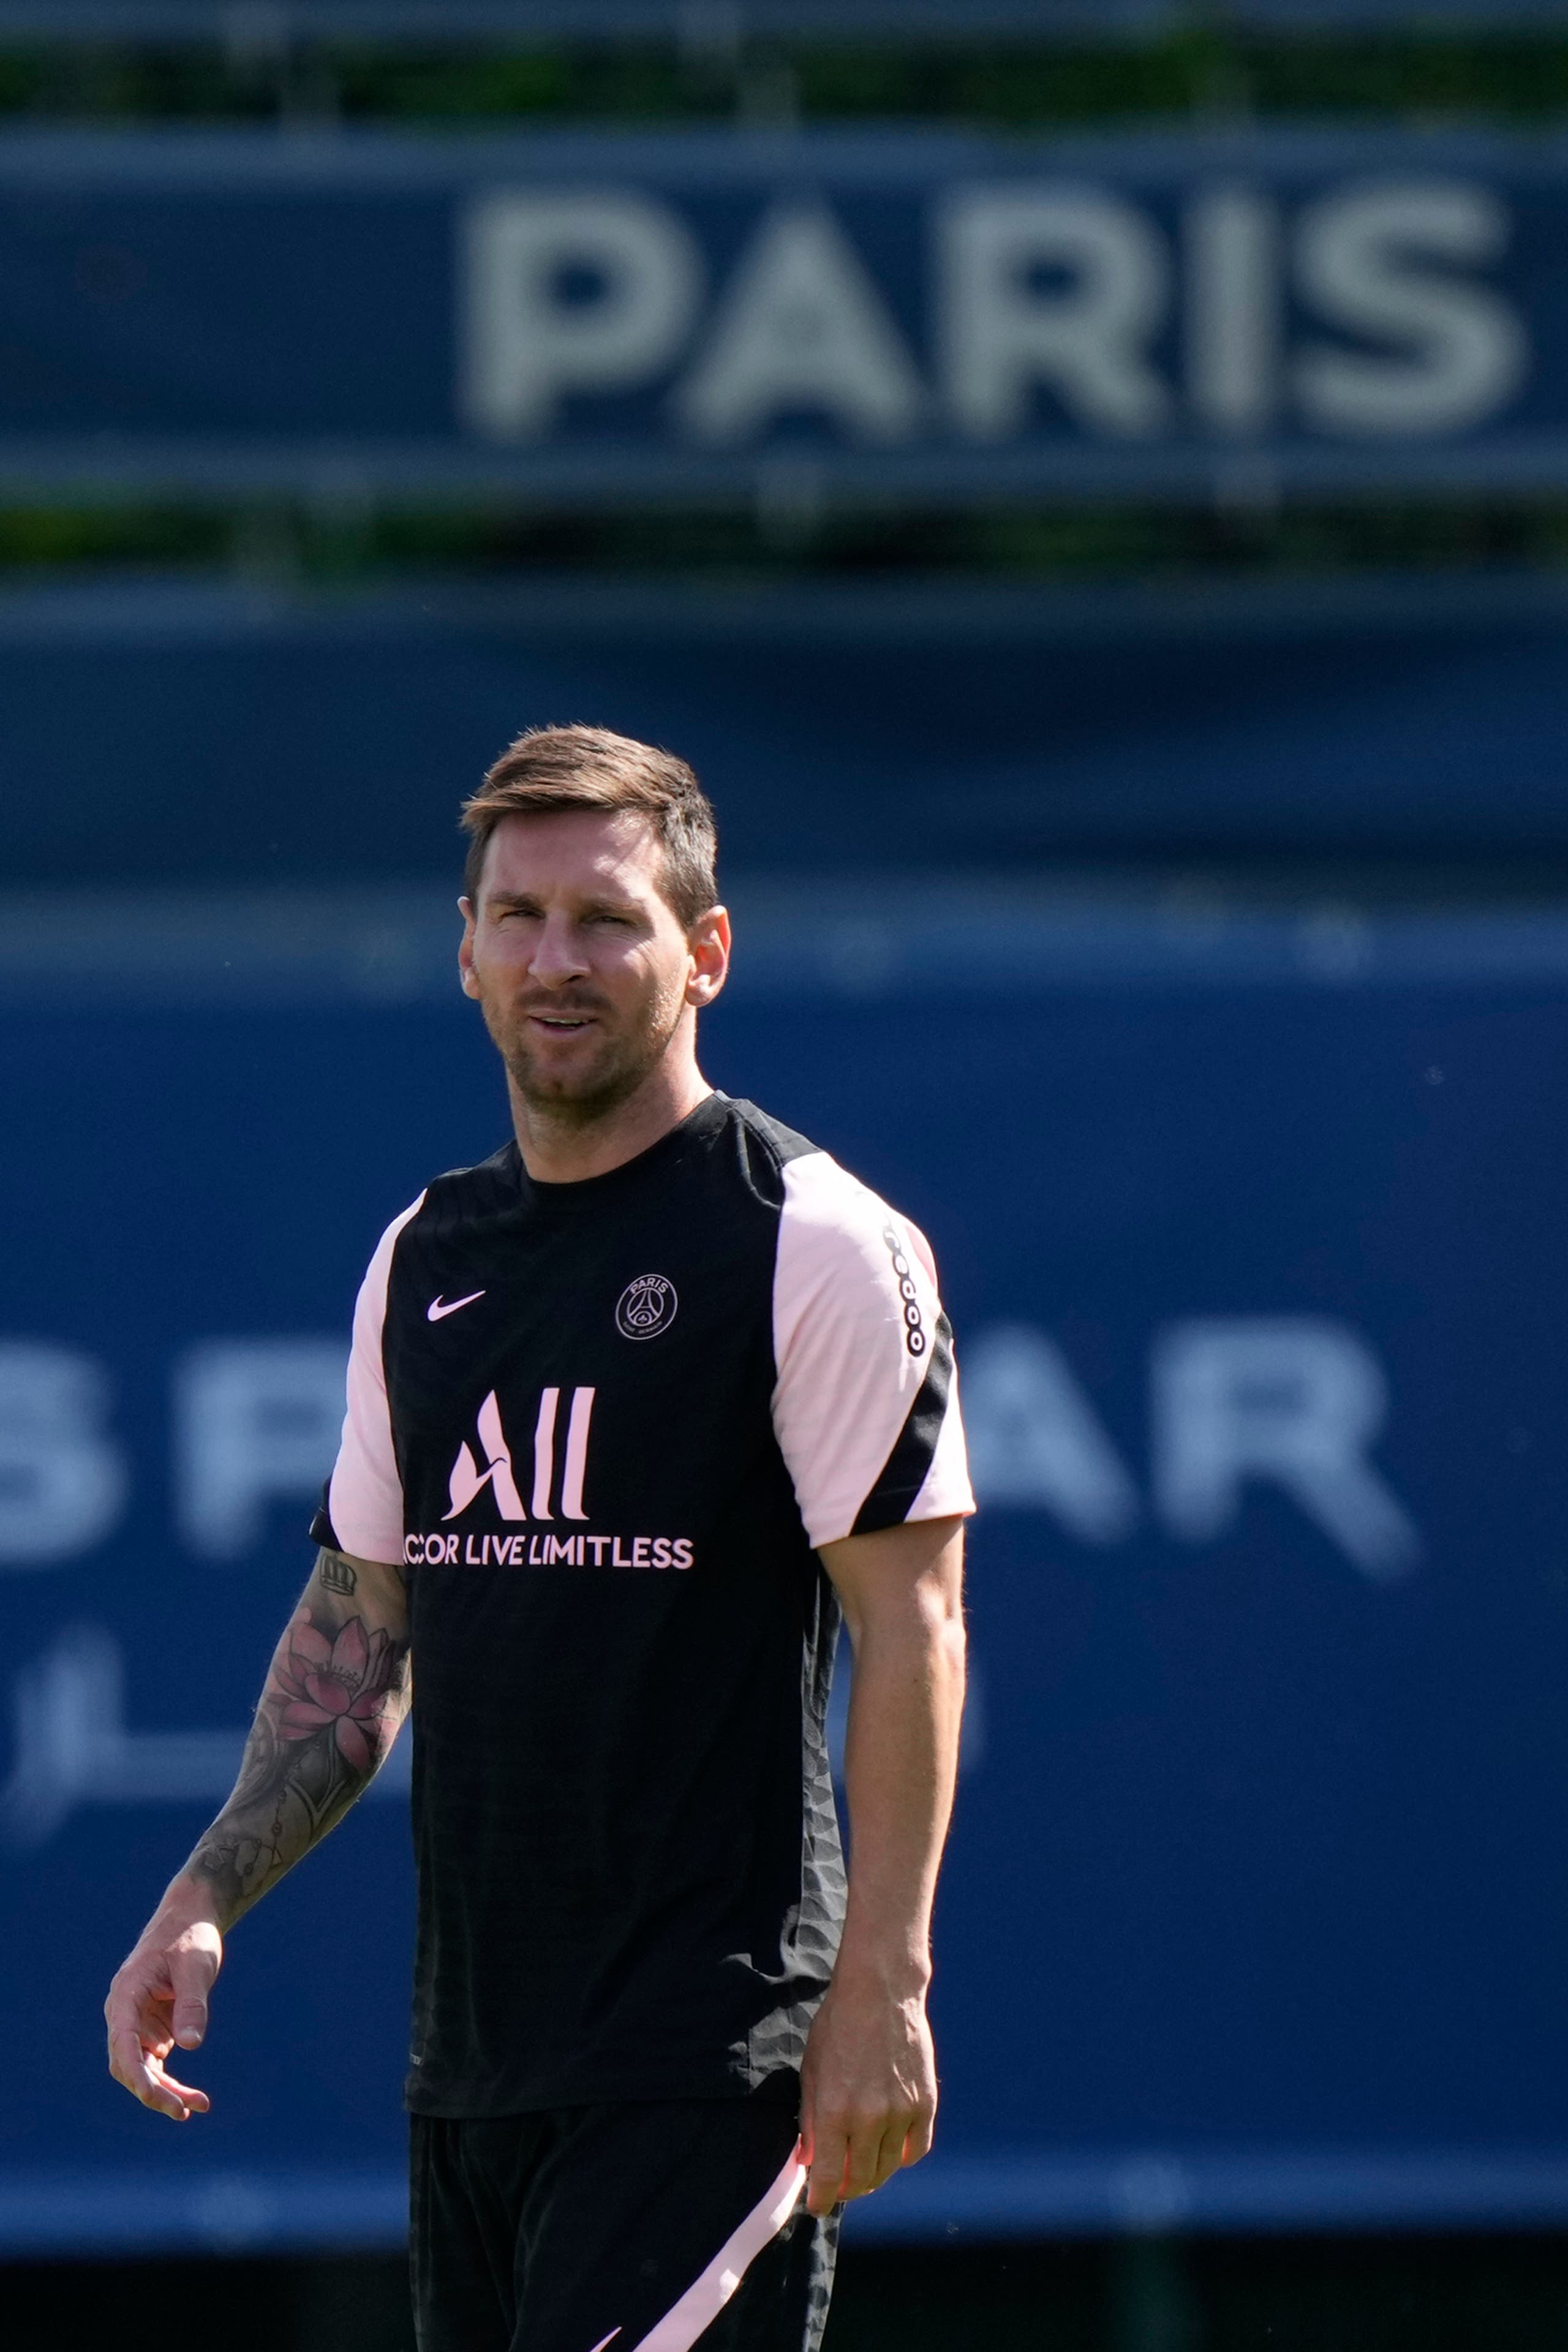 Lionel Messi walks on the pitch at the Paris Saint-Germain training camp in Saint-Germain-en-Laye, west of Paris, Friday, Aug. 13, 2021 The 34-year-old Argentina star arrived Tuesday in Paris to sign a two-year deal with the option for a third season with PSG after leaving Barcelona. (File photo: AP)